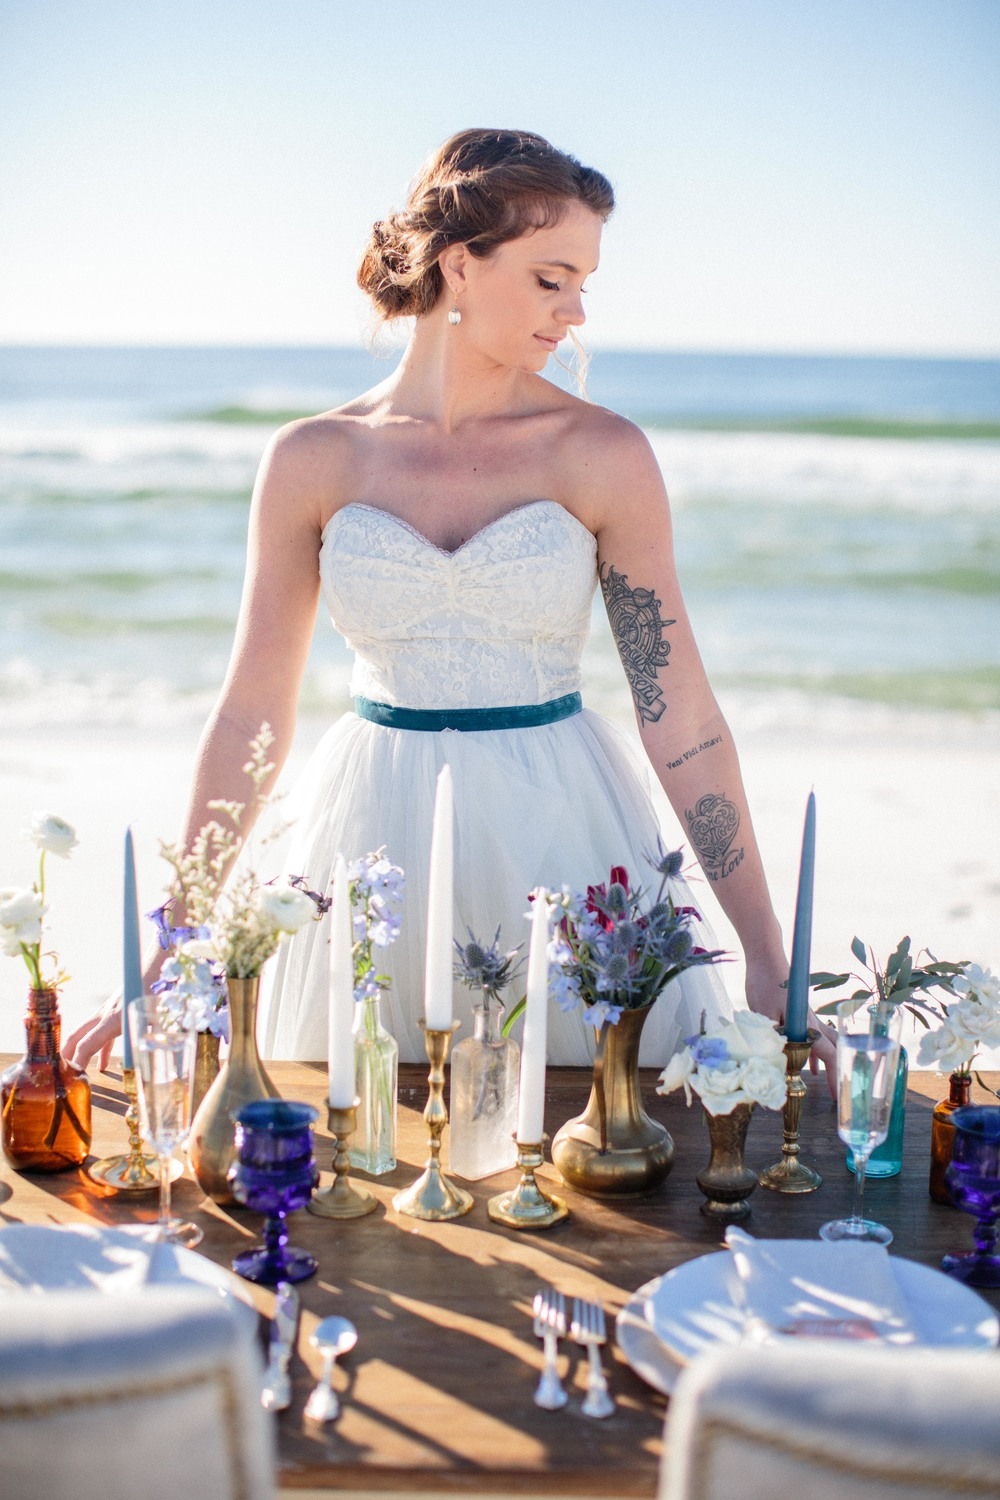 Ais-Portraits-ivey-weddings-and-events-ivory-and-beau-bridal-boutique-sunrise-wedding-sunrise-bridal-session-blue-dress-rebecca-schoneveld-wedding-dress-blue-velvet-wedding-beach-wedding-savannah-bridal-boutique-savannah-wedding-19.jpg